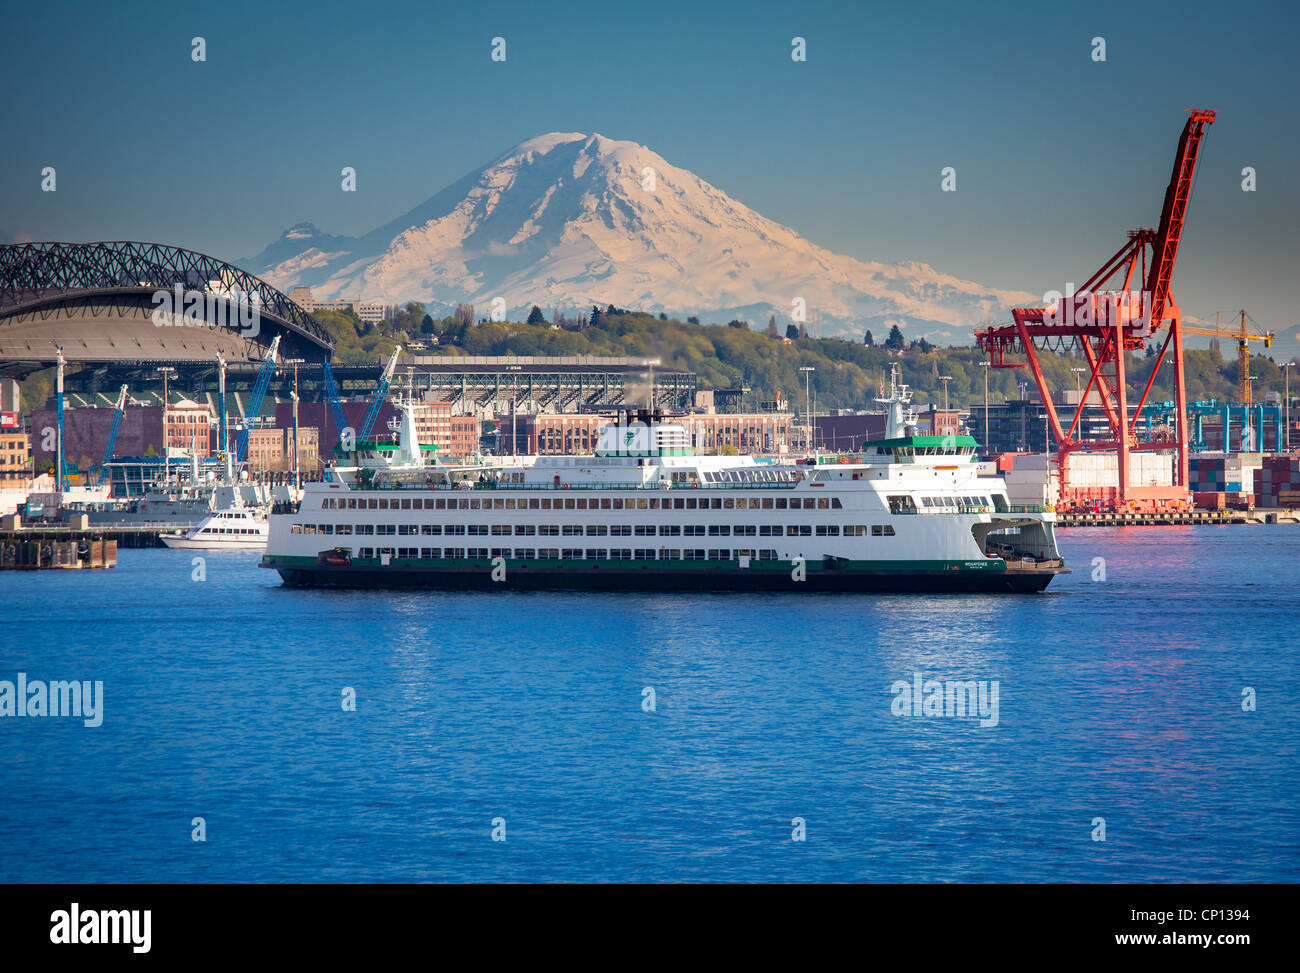 Washington state ferry in Seattle harbor with Mount Rainier in the distance - Stock Image